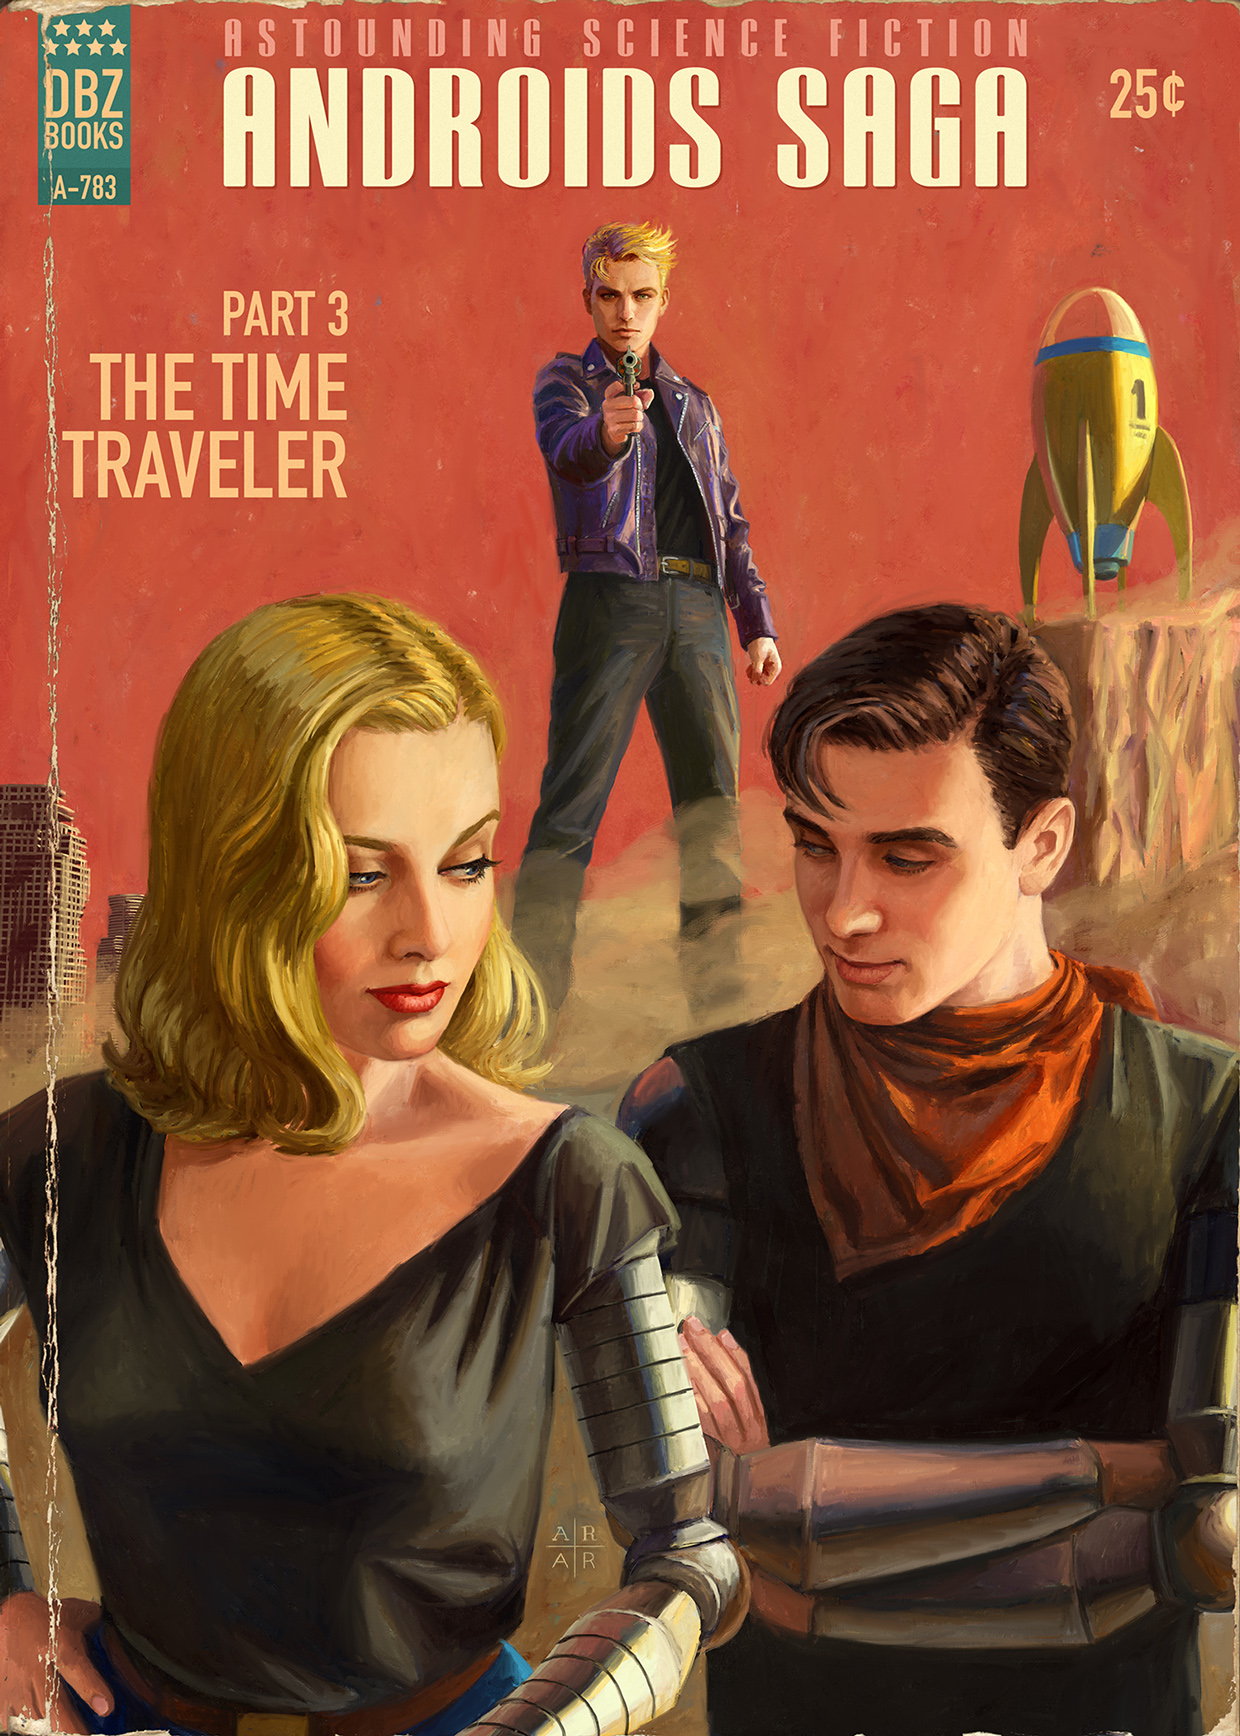 androids saga part 3 the time traveler pulp covers